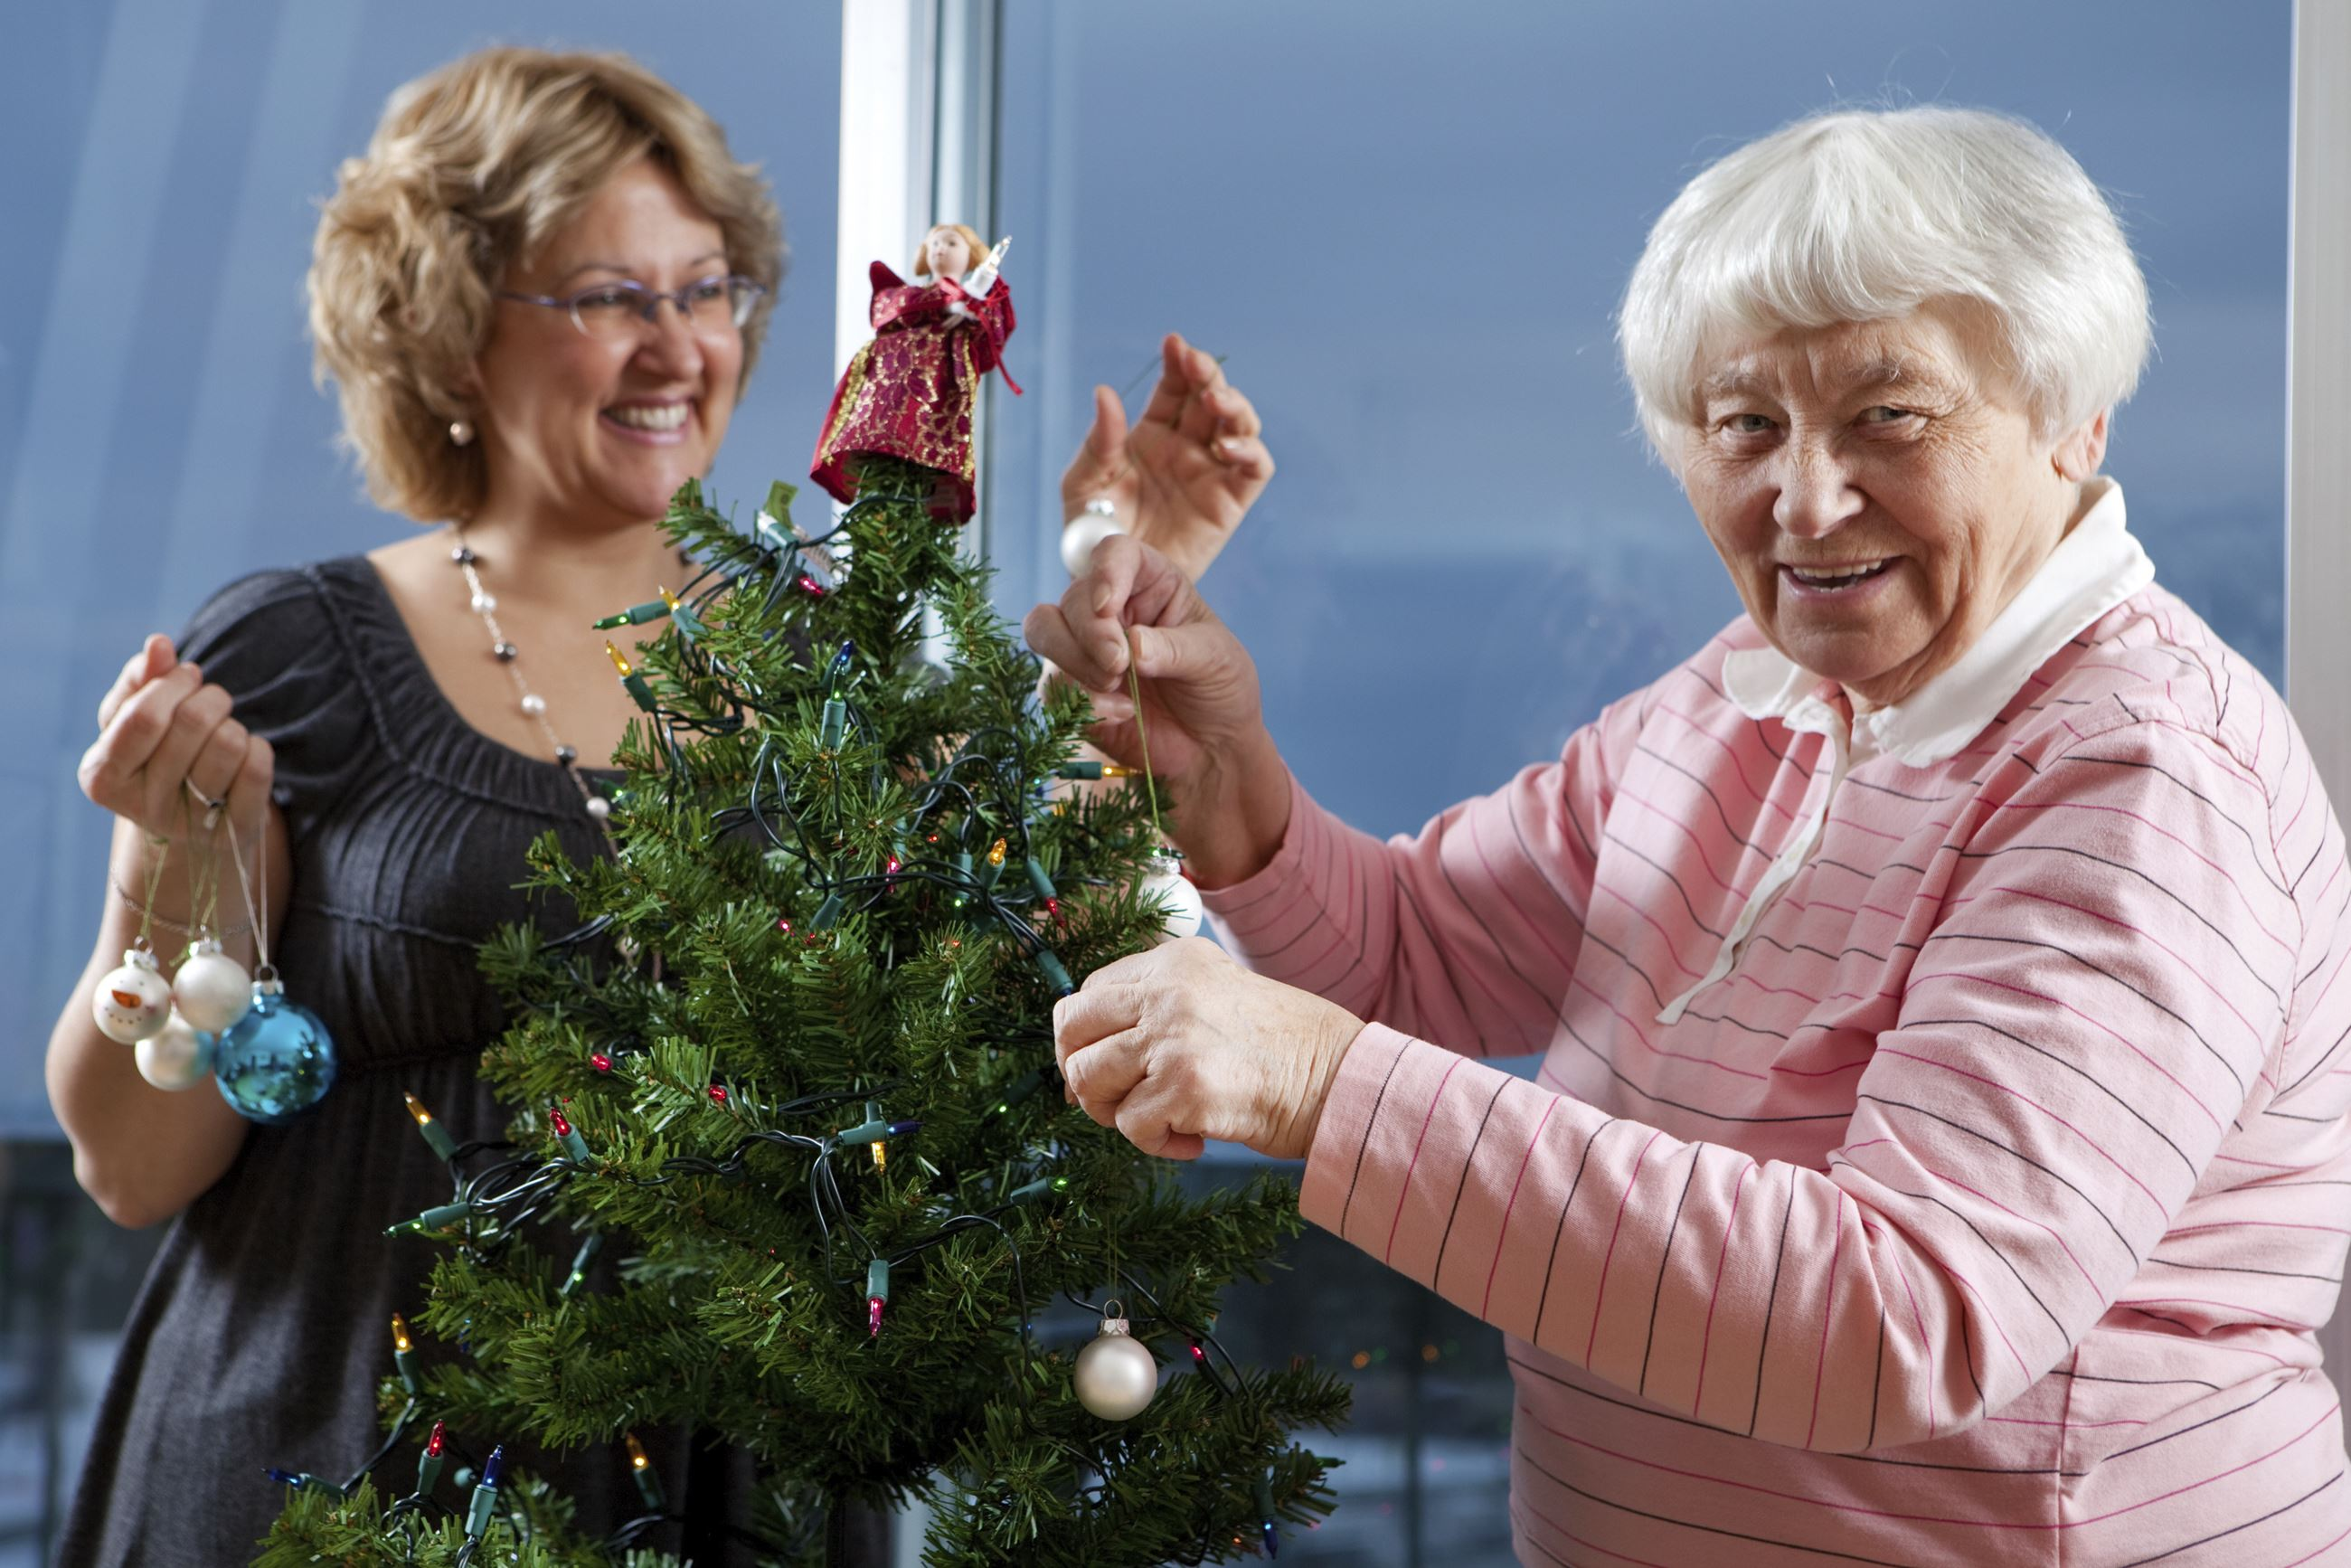 Two women decorate a Christmas tree